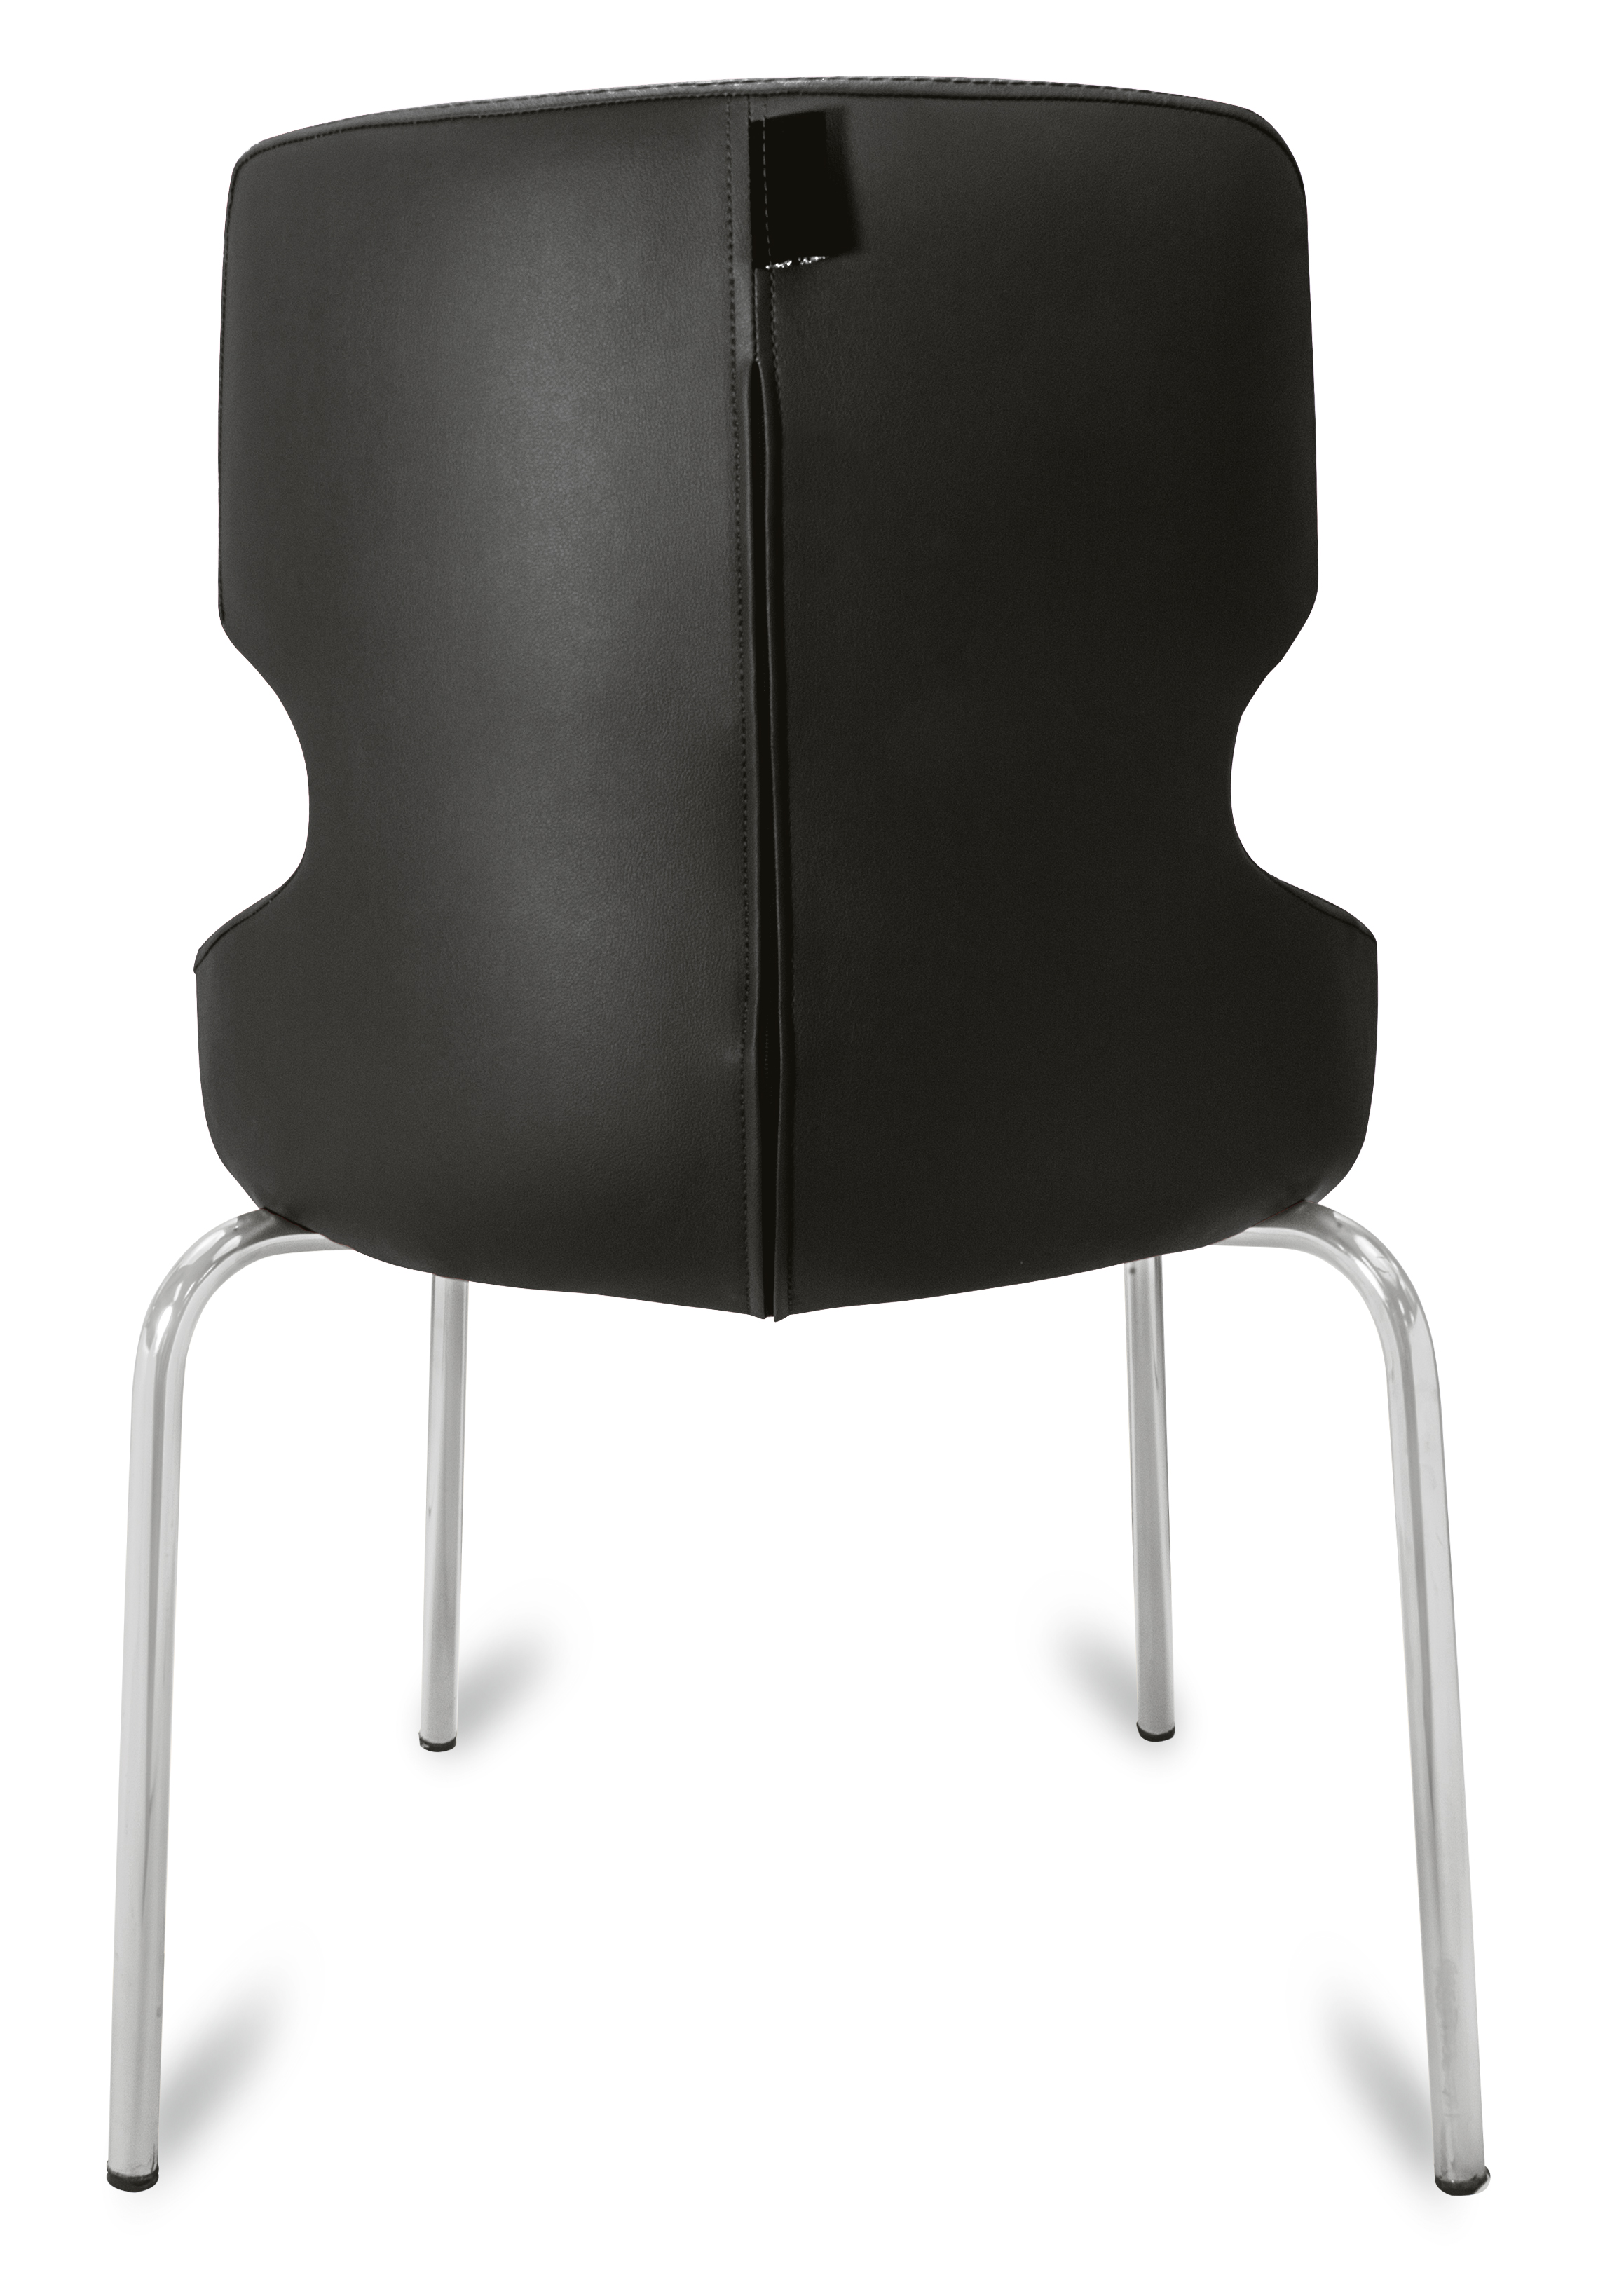 polsterstuhl donna schwarz metallf e f r gastronomie g nstig m bel star. Black Bedroom Furniture Sets. Home Design Ideas